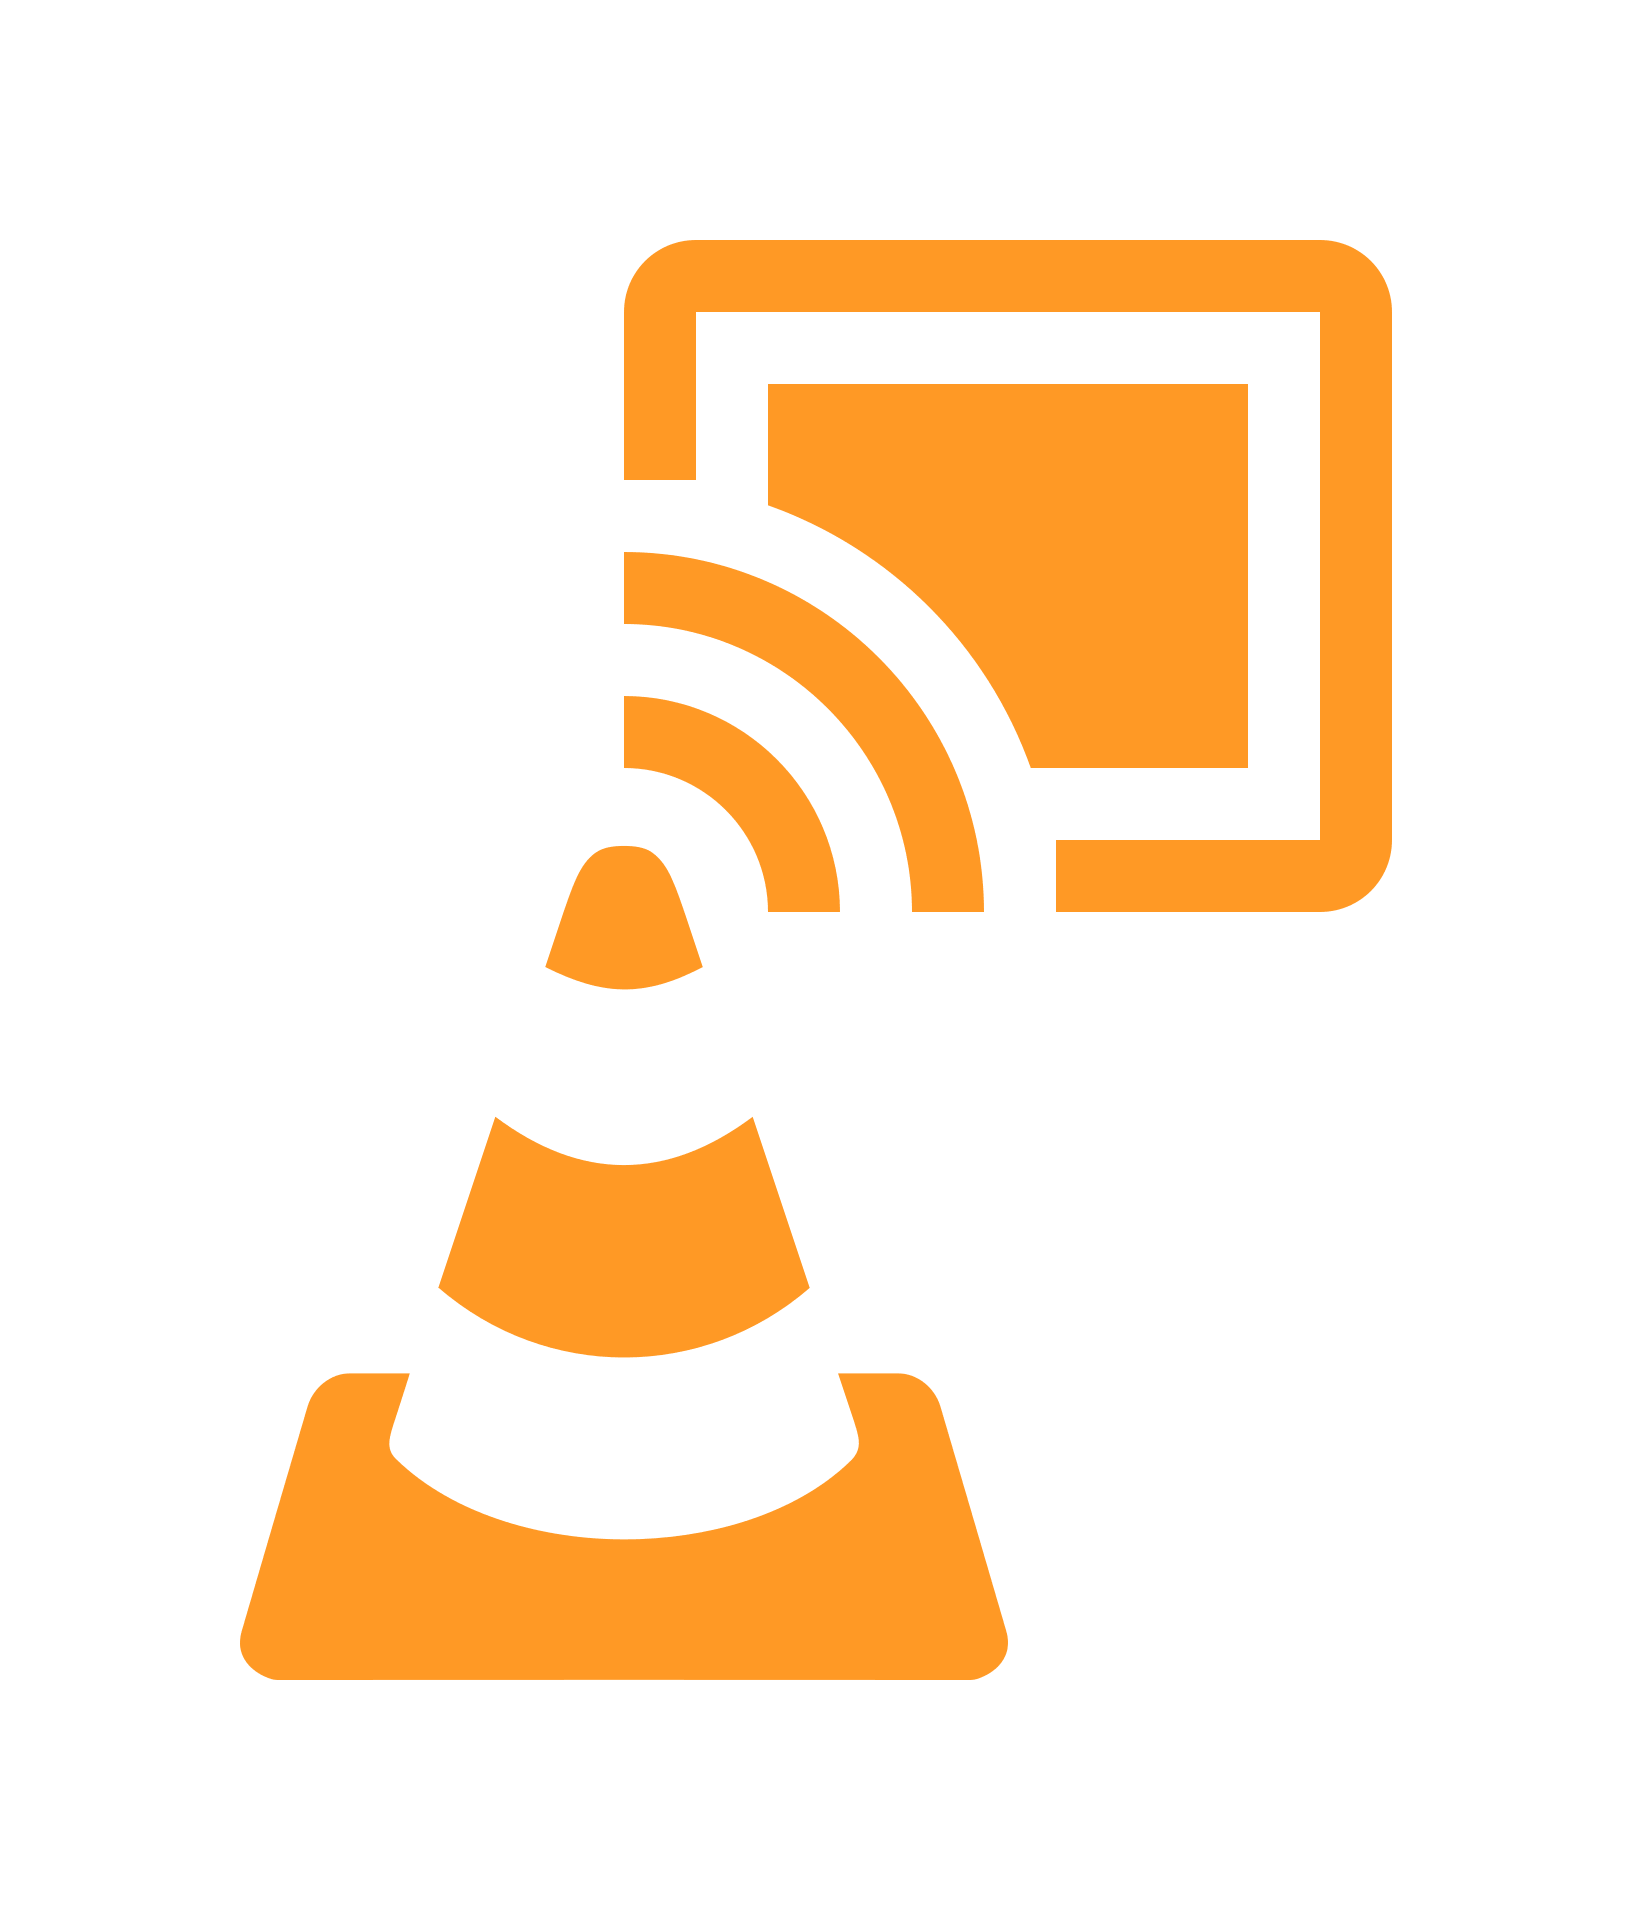 vlc-android/res/drawable-hdpi/renderer_background_cone.png